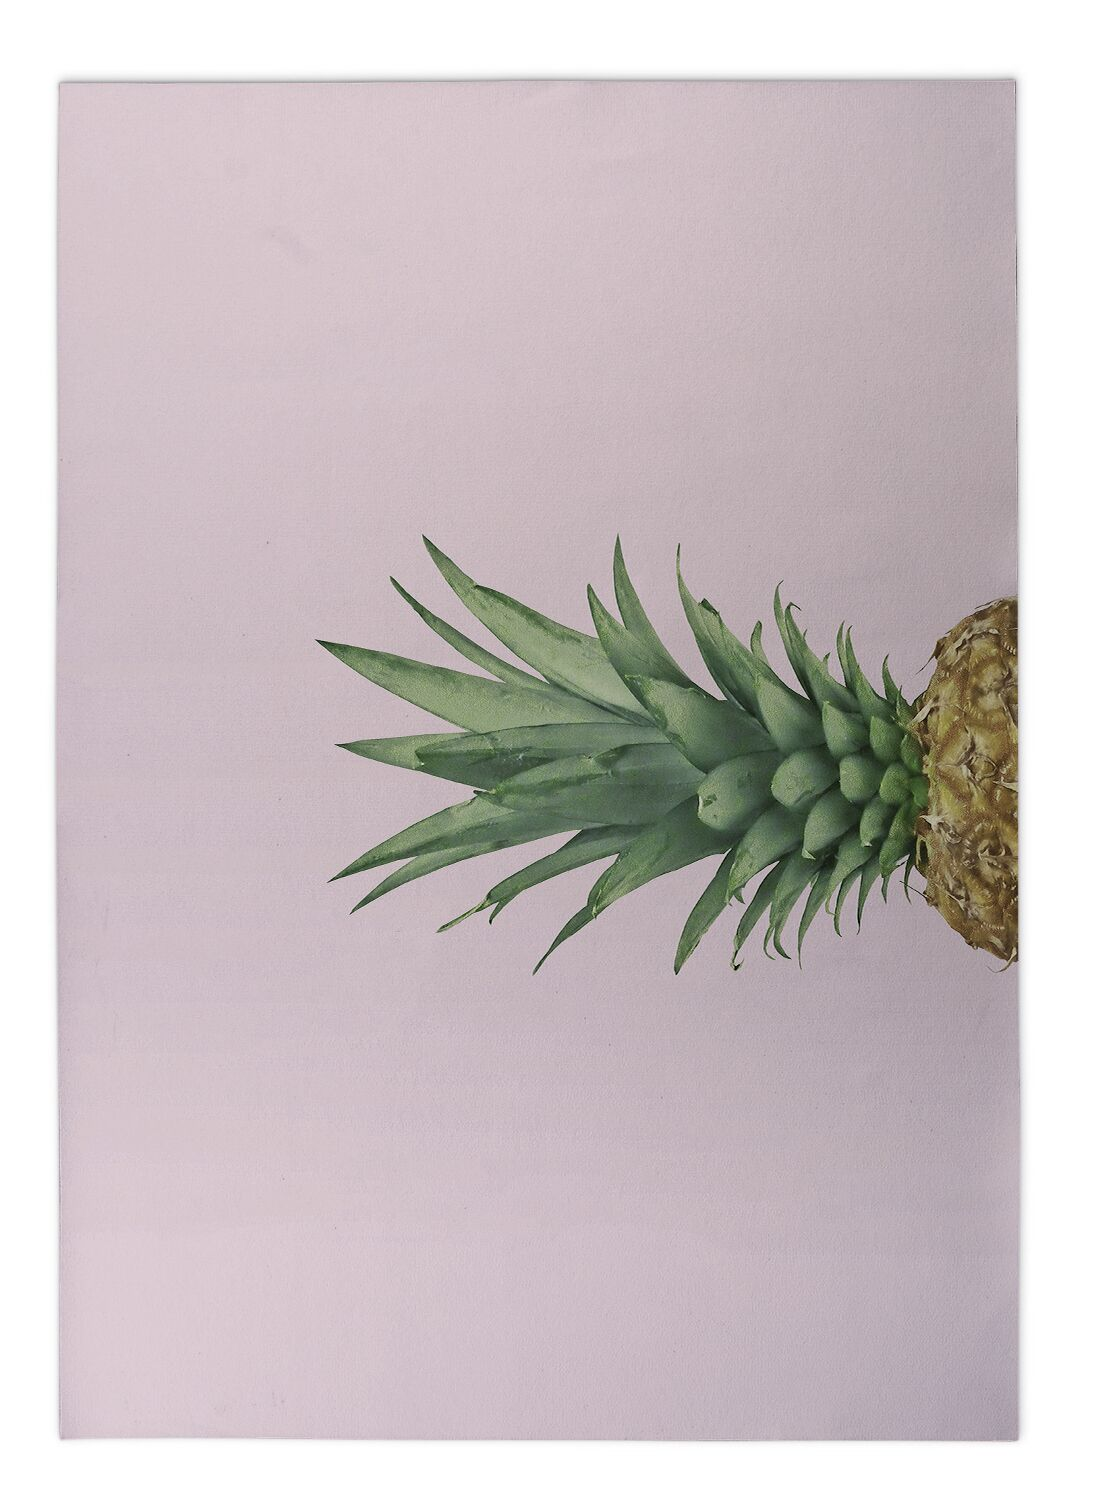 Giolou Pineapple Top Pink Indoor/Outdoor Area Rug Size: Rectangle 4' x 5'